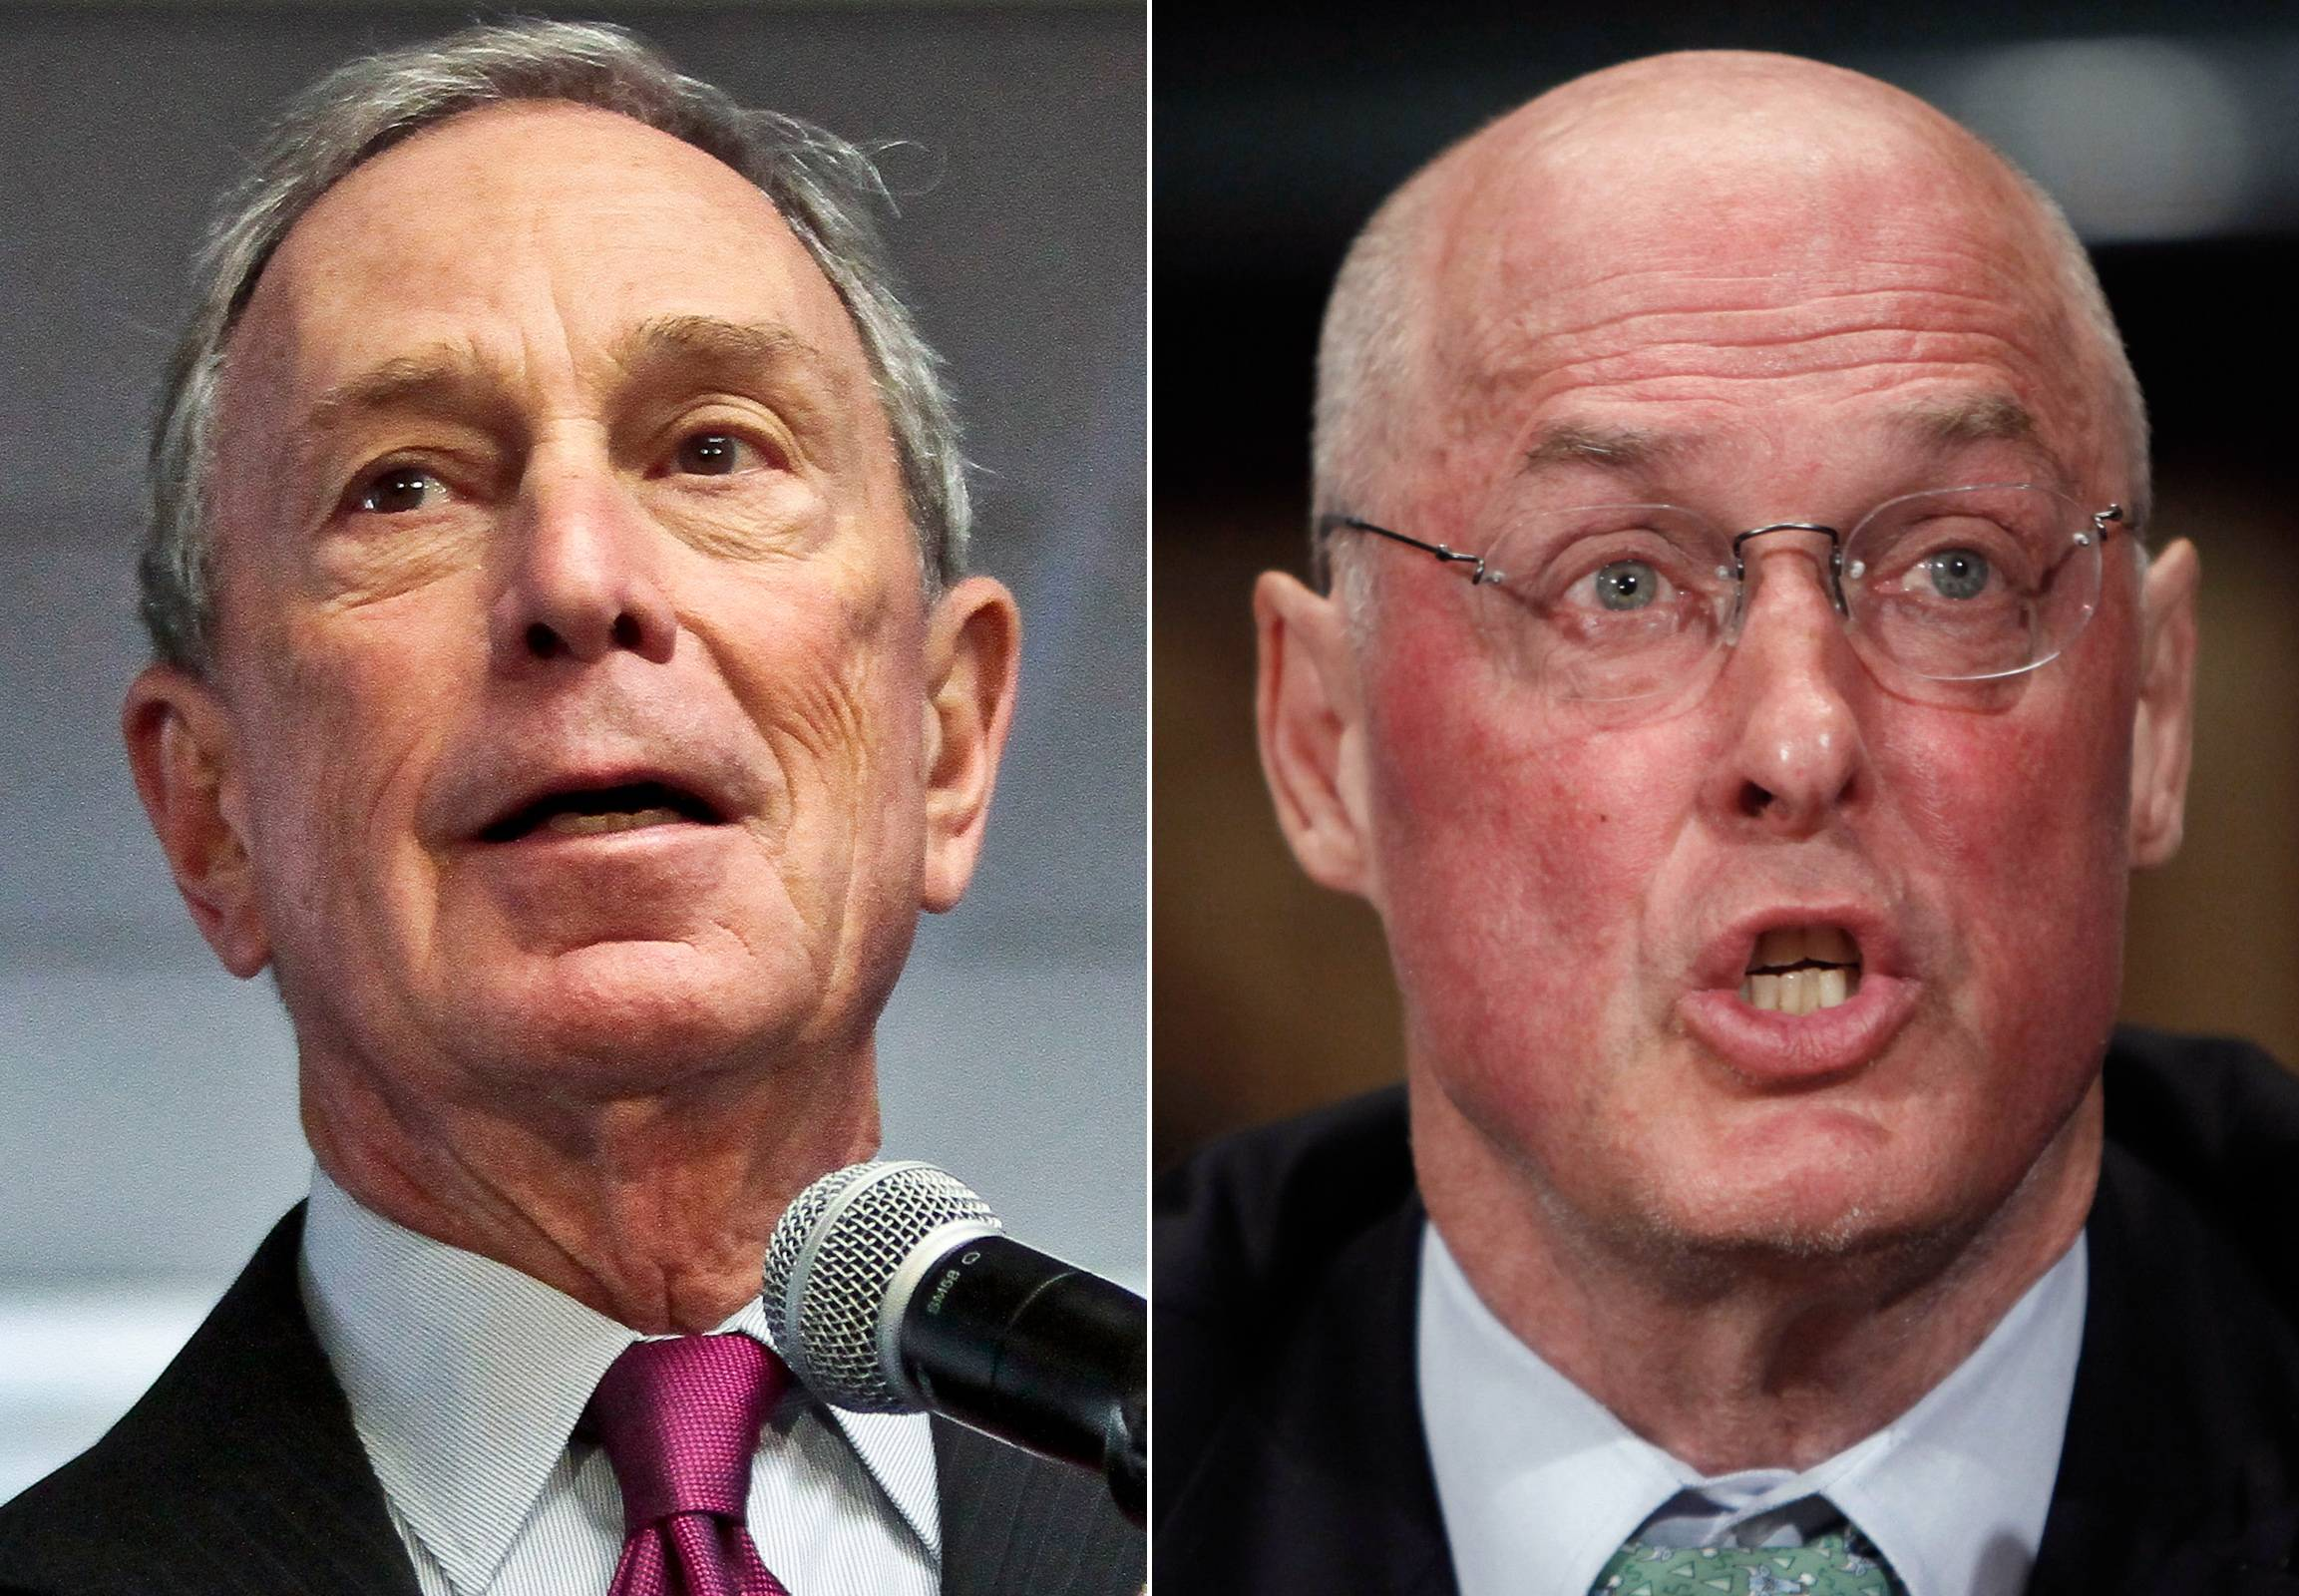 This combo made from file photos shows former New York City Mayor Michael Bloomberg, left, and former Treasury Secretary Henry Paulson. Climate change will exact enormous costs on U.S. regional economies in the form of lost property, reduced industrial output and higher health expenses, according to a report backed by Bloomberg, Paulson and Thomas F. Steyer, a former hedge fund manager.